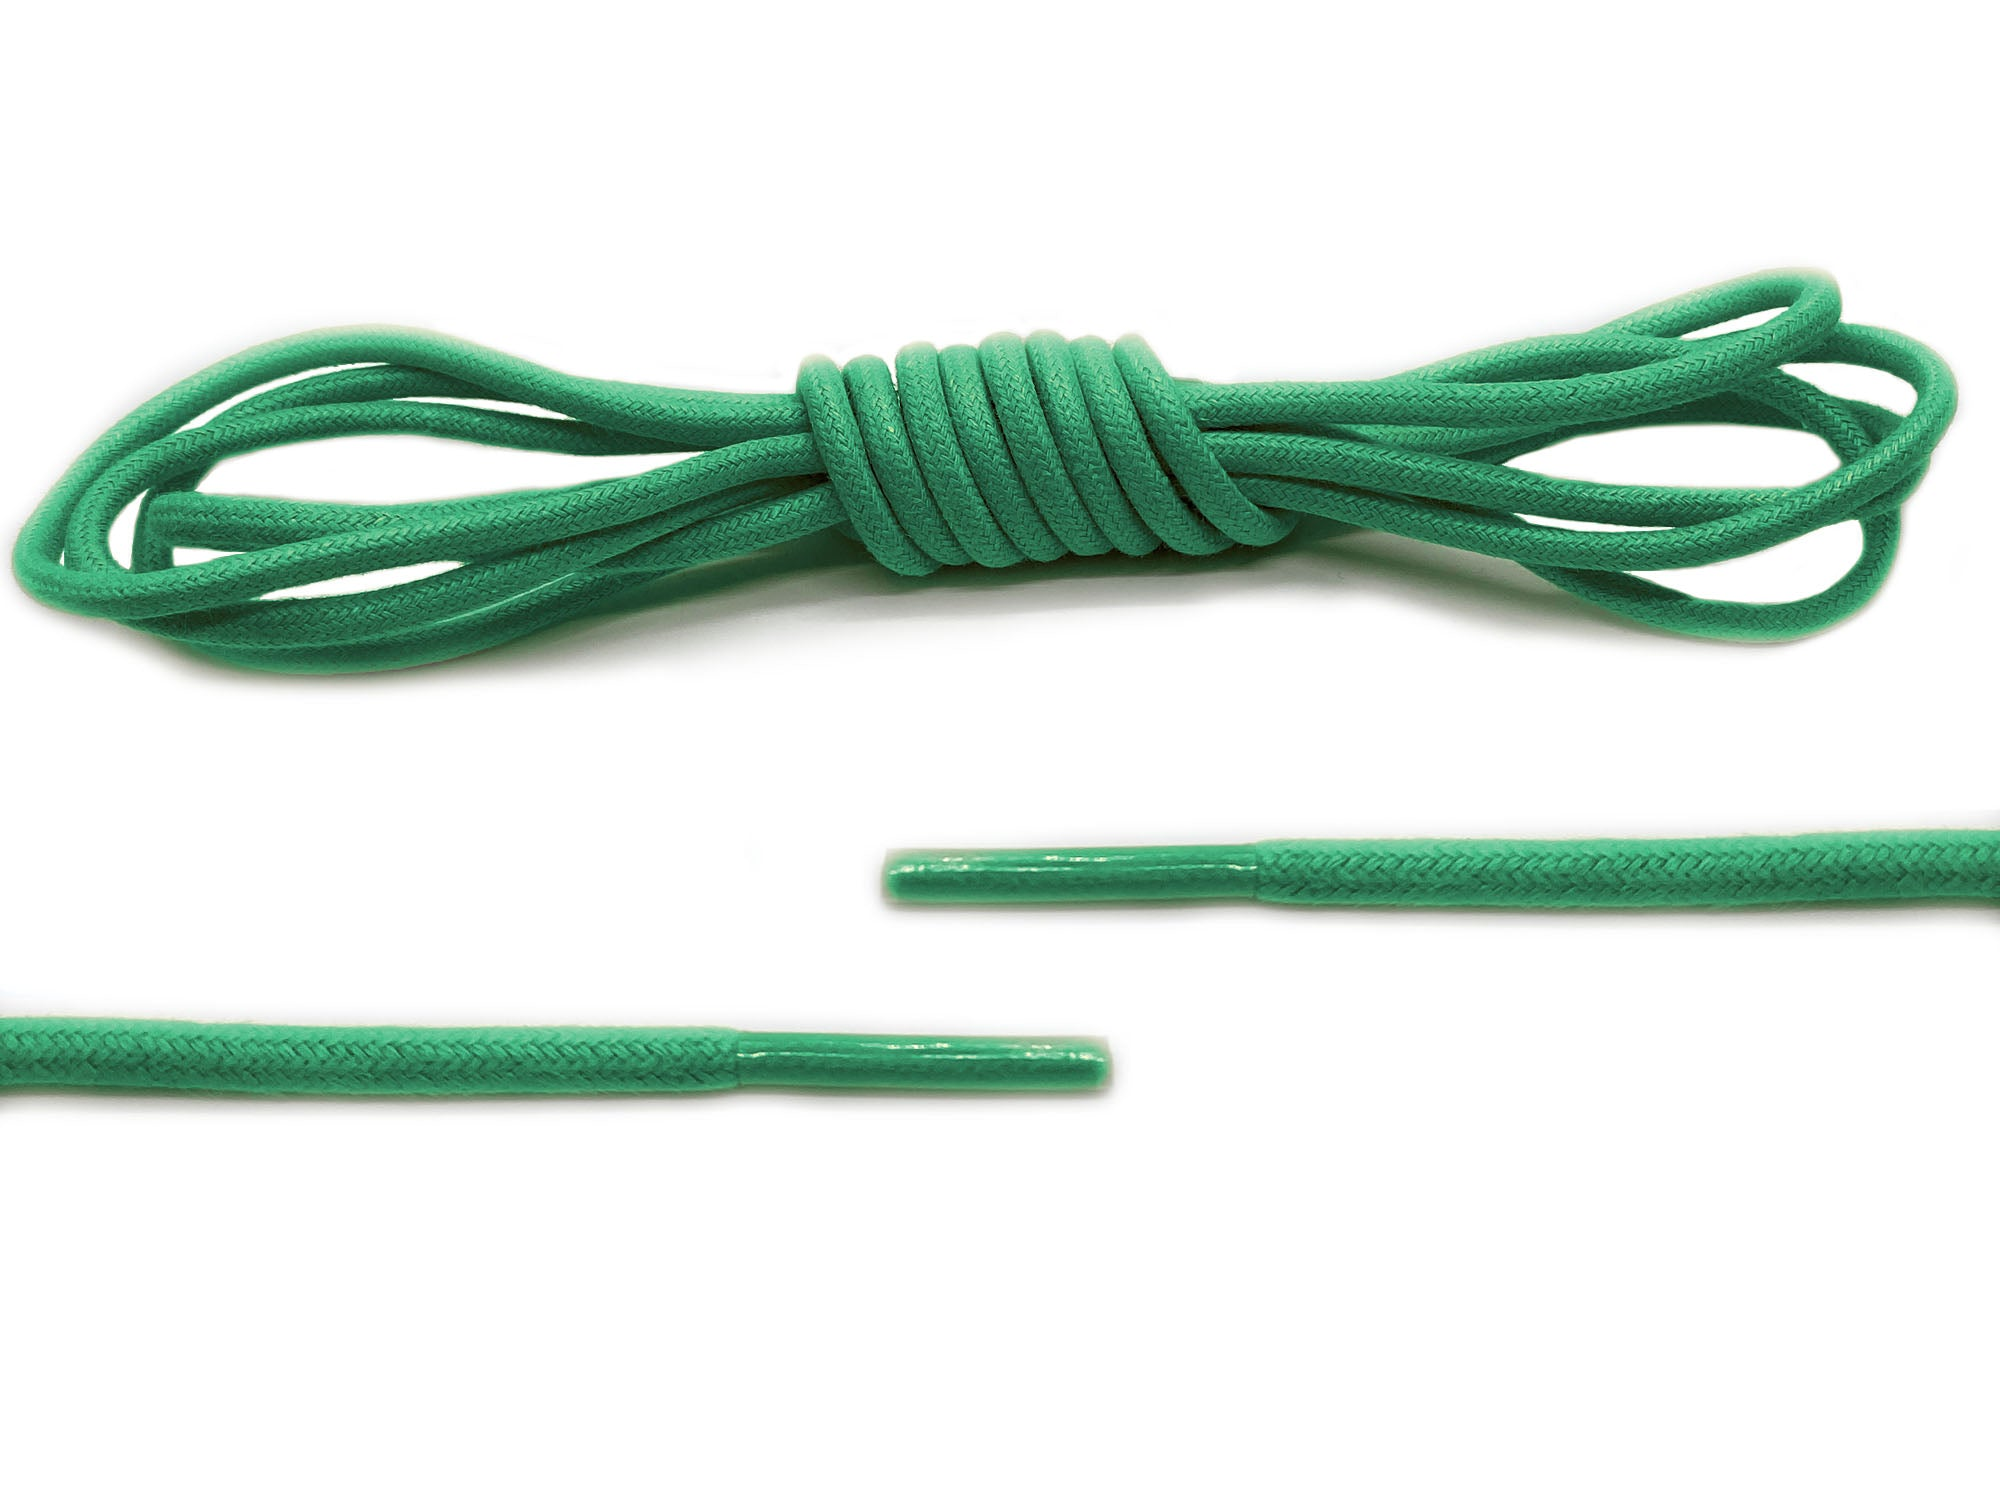 Green Round Waxed Laces - Belaced